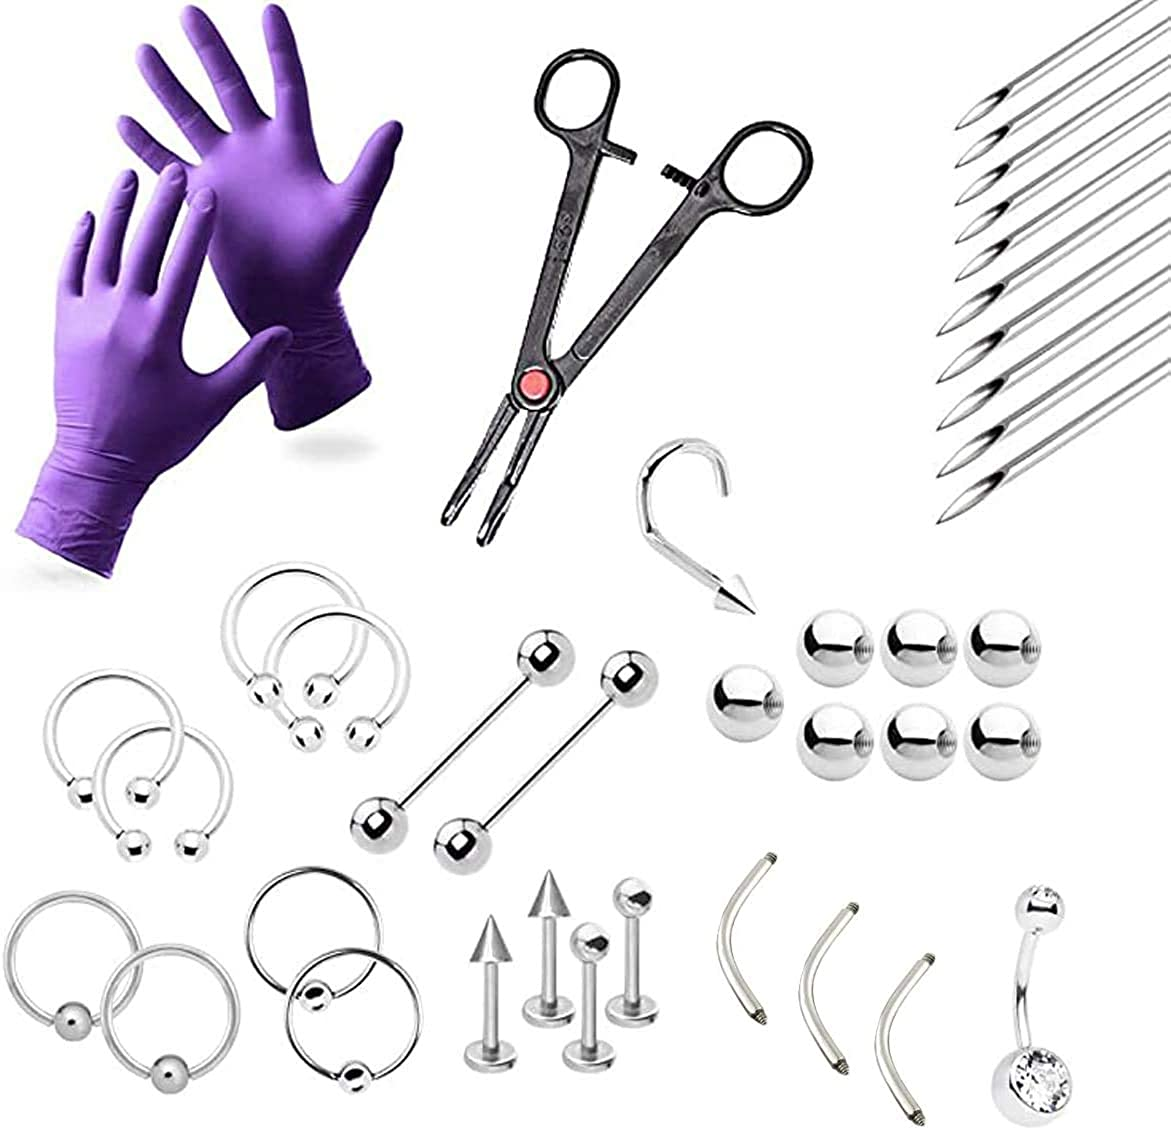 38-Piece Professional Piercing Kit - Lip, Nipple, Replacement Shaft Belly, Eyebrow, Tongue, Ear Piercing Jewelry - Needles, Gloves and Tools Included